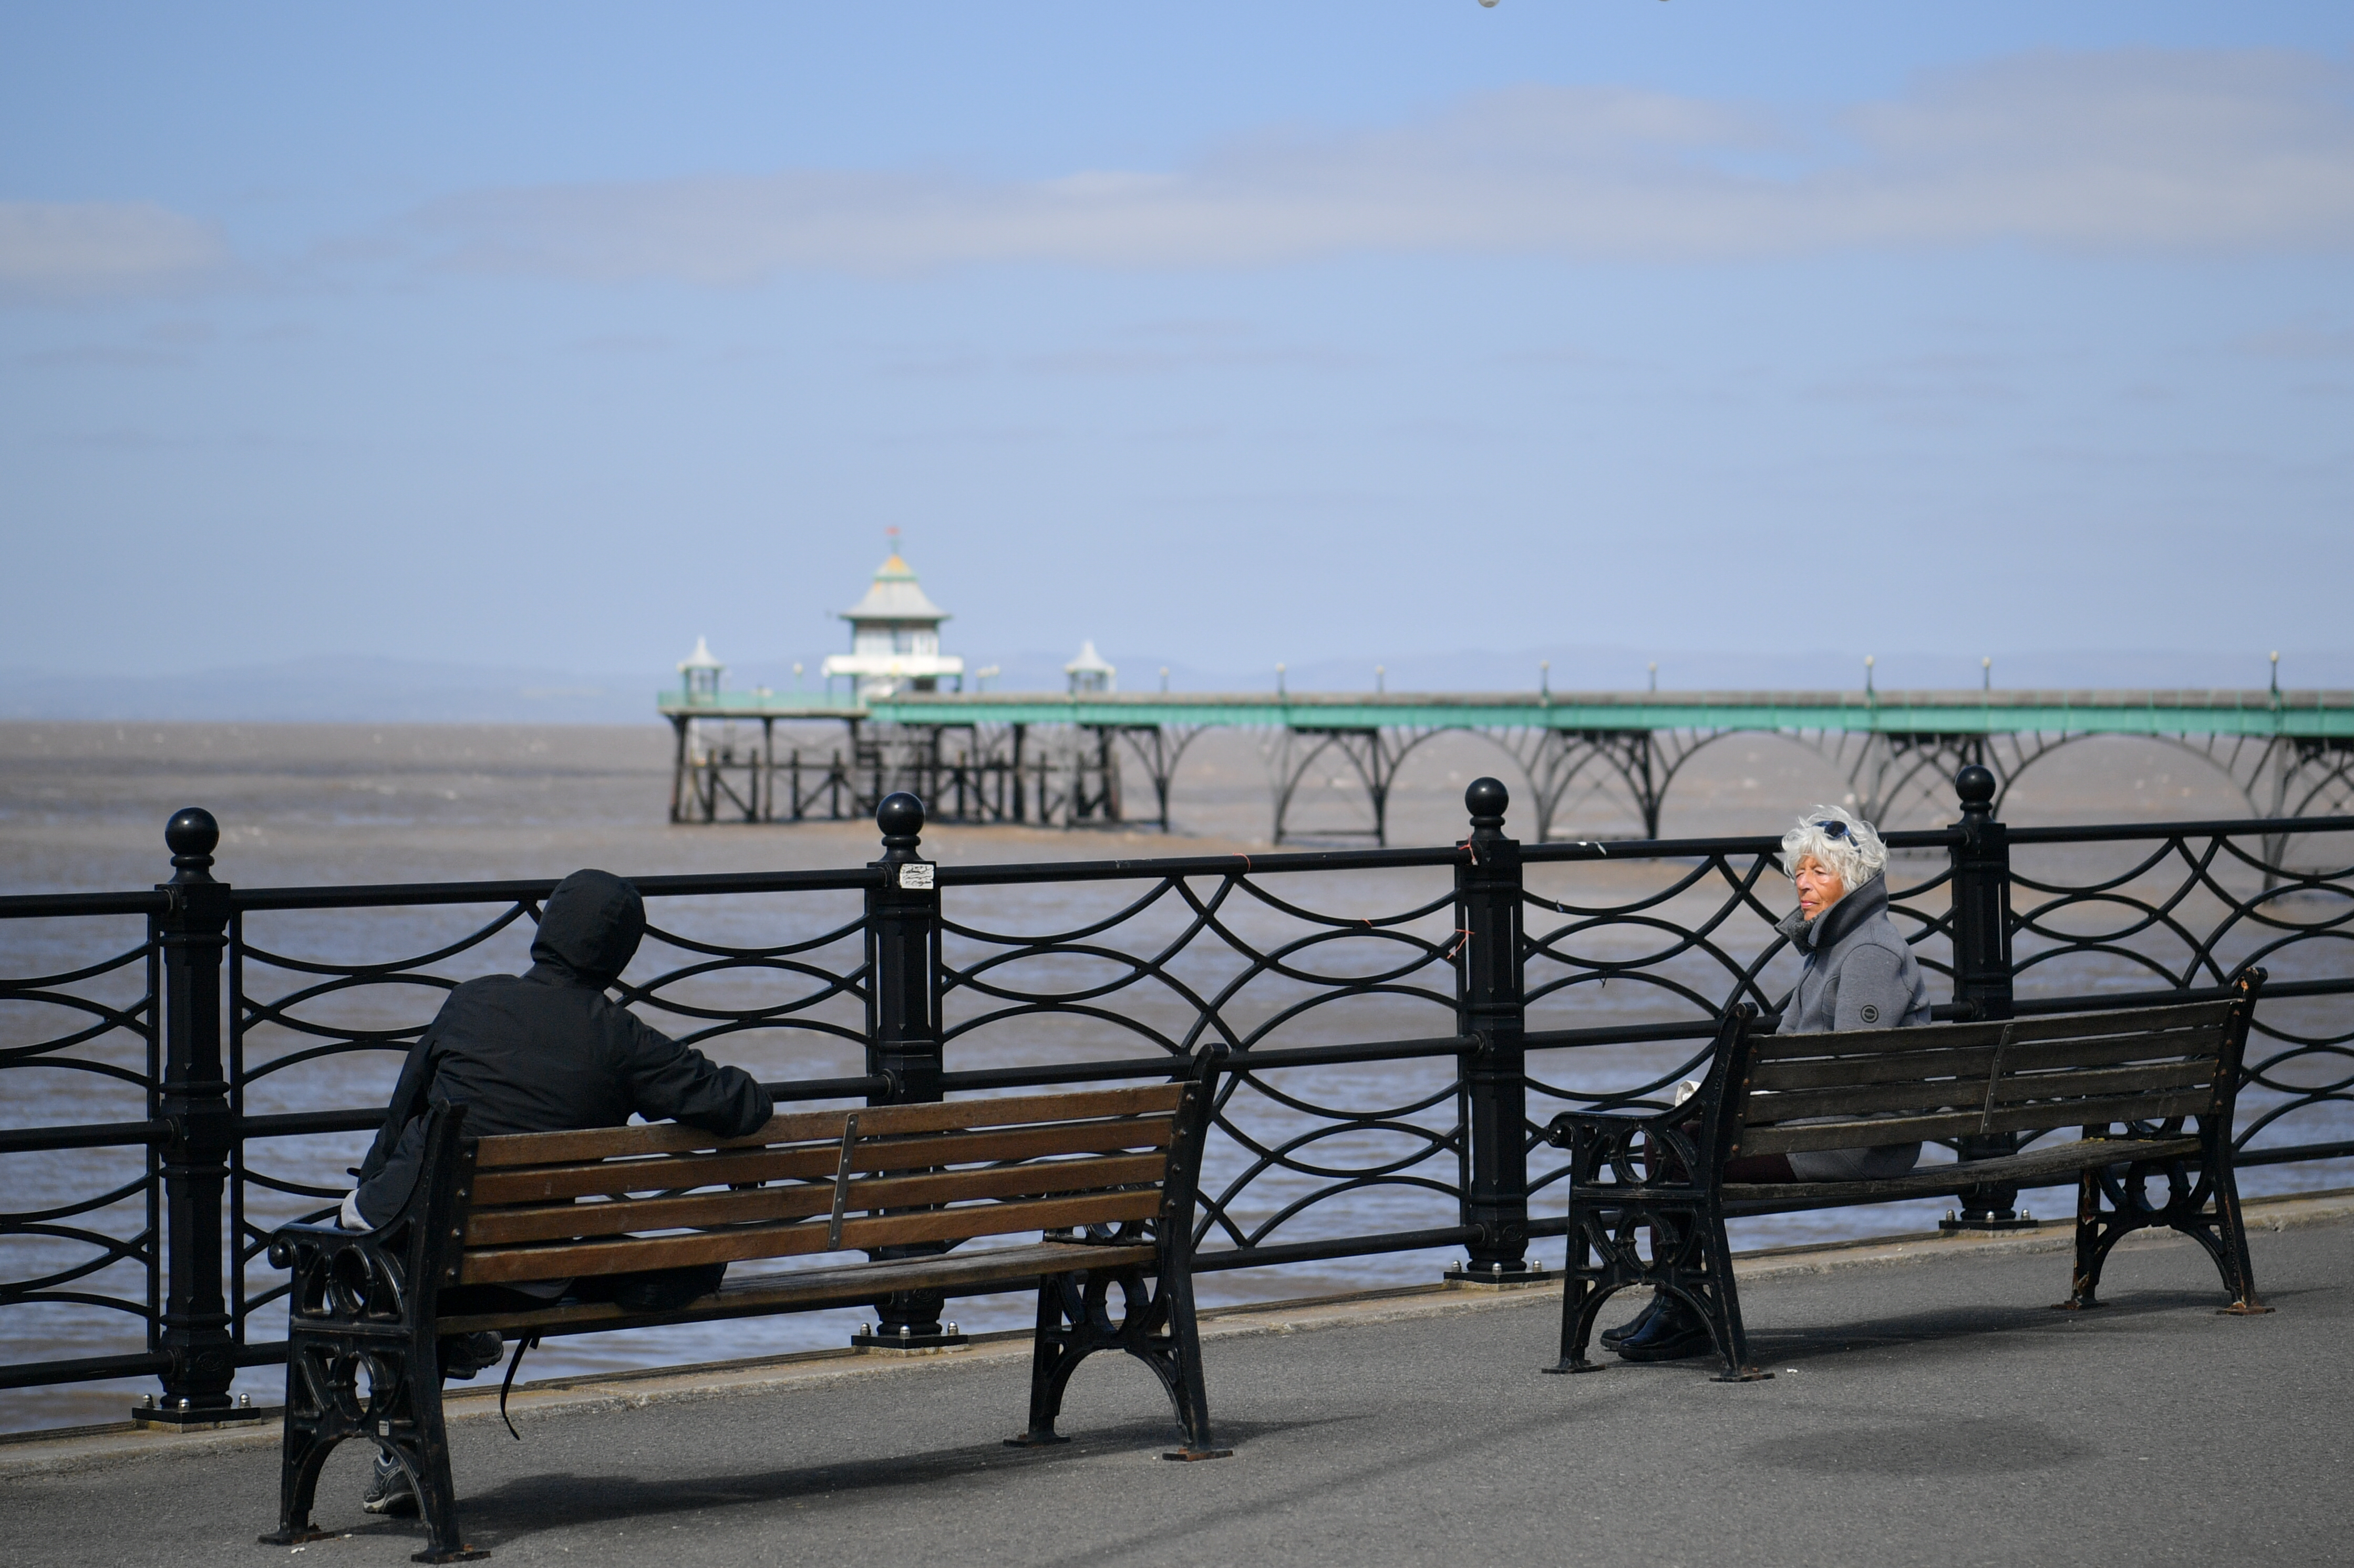 Two people practice social distancing while talking to each other sitting on benches in Clevedon on Easter Bank Holiday Monday at midday, as the UK continues in lockdown to help curb the spread of the coronavirus.